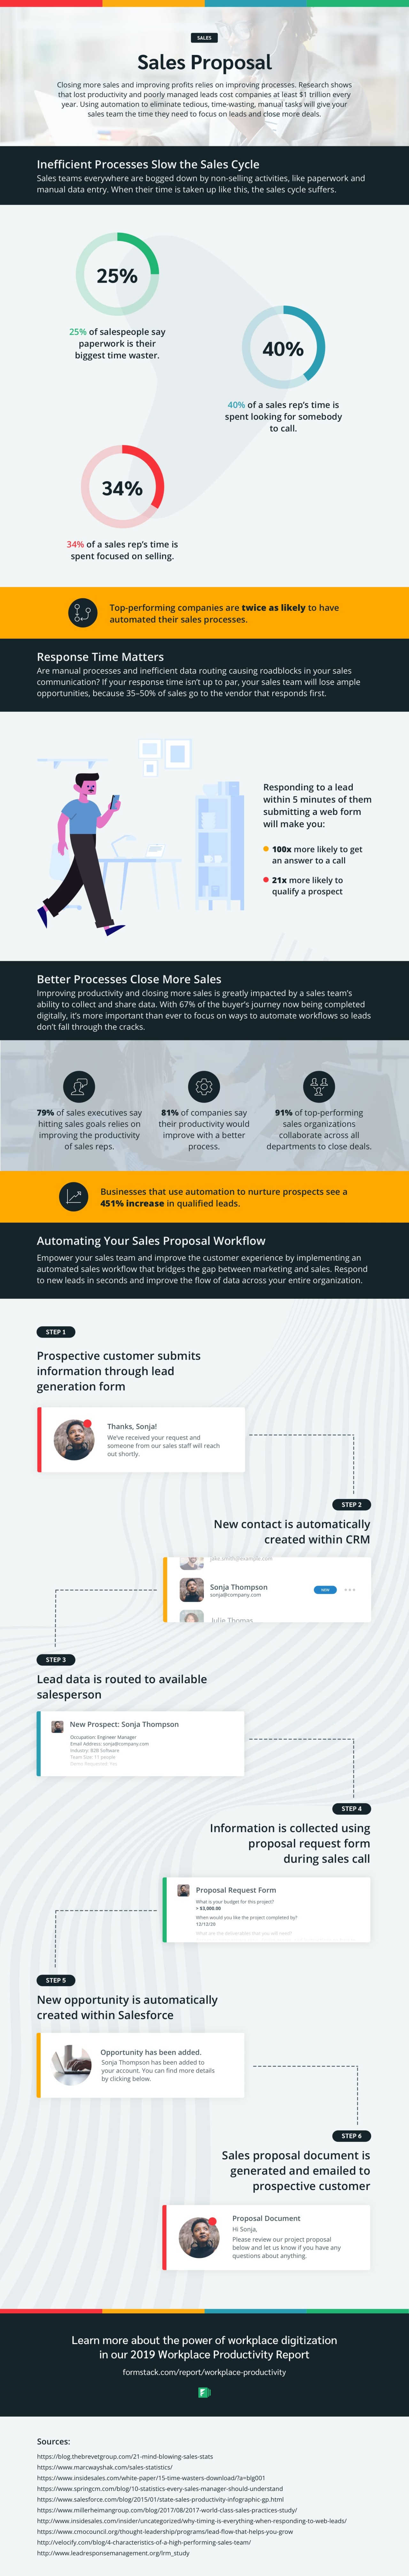 sales productivity tools infographic